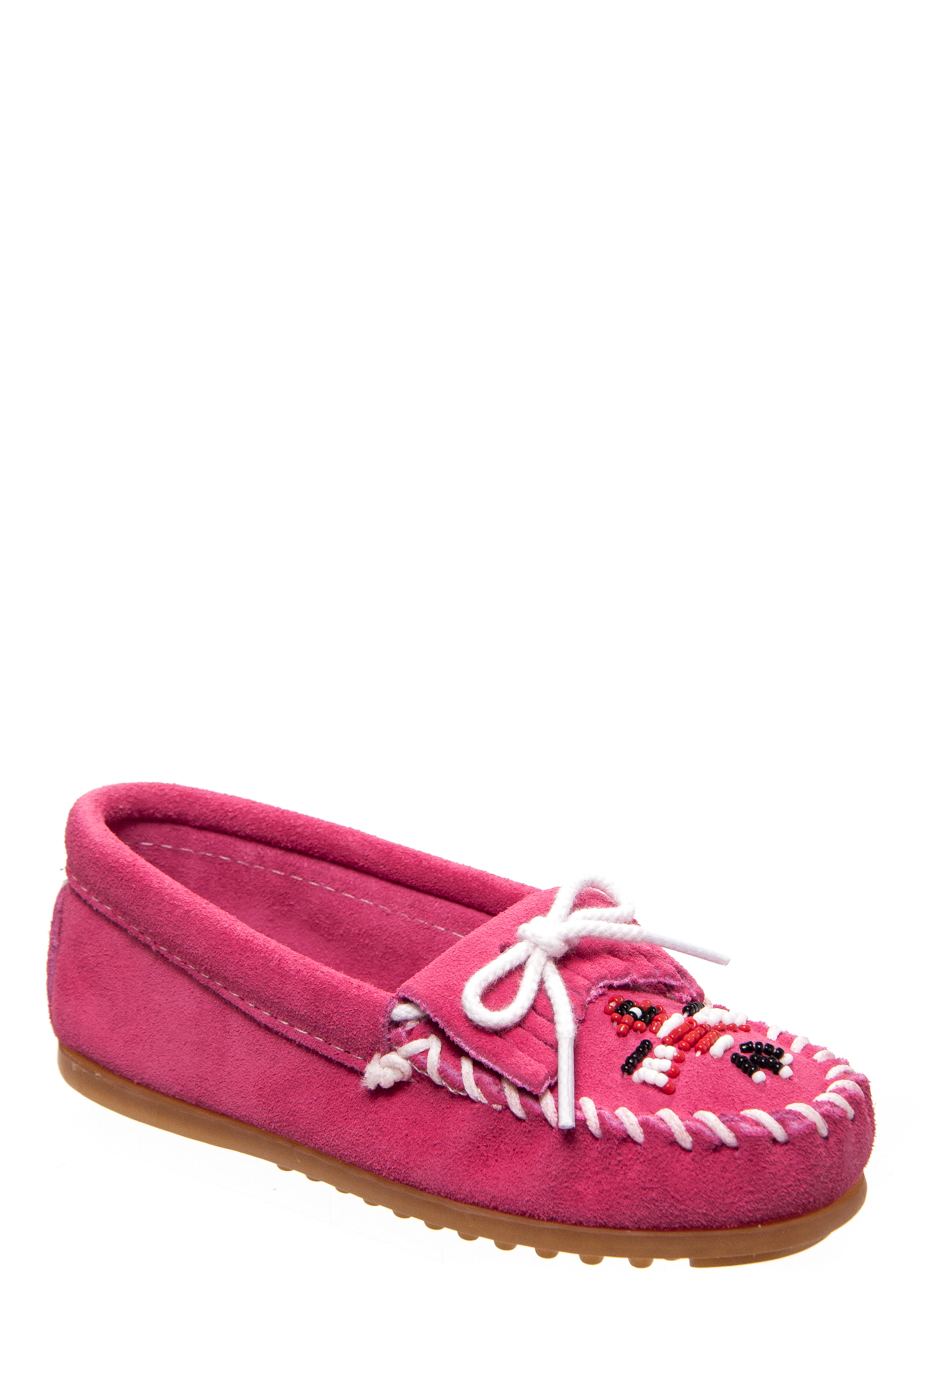 Minnetonka Kids' Thunderbird II Moccasin Pink   Embroidery by